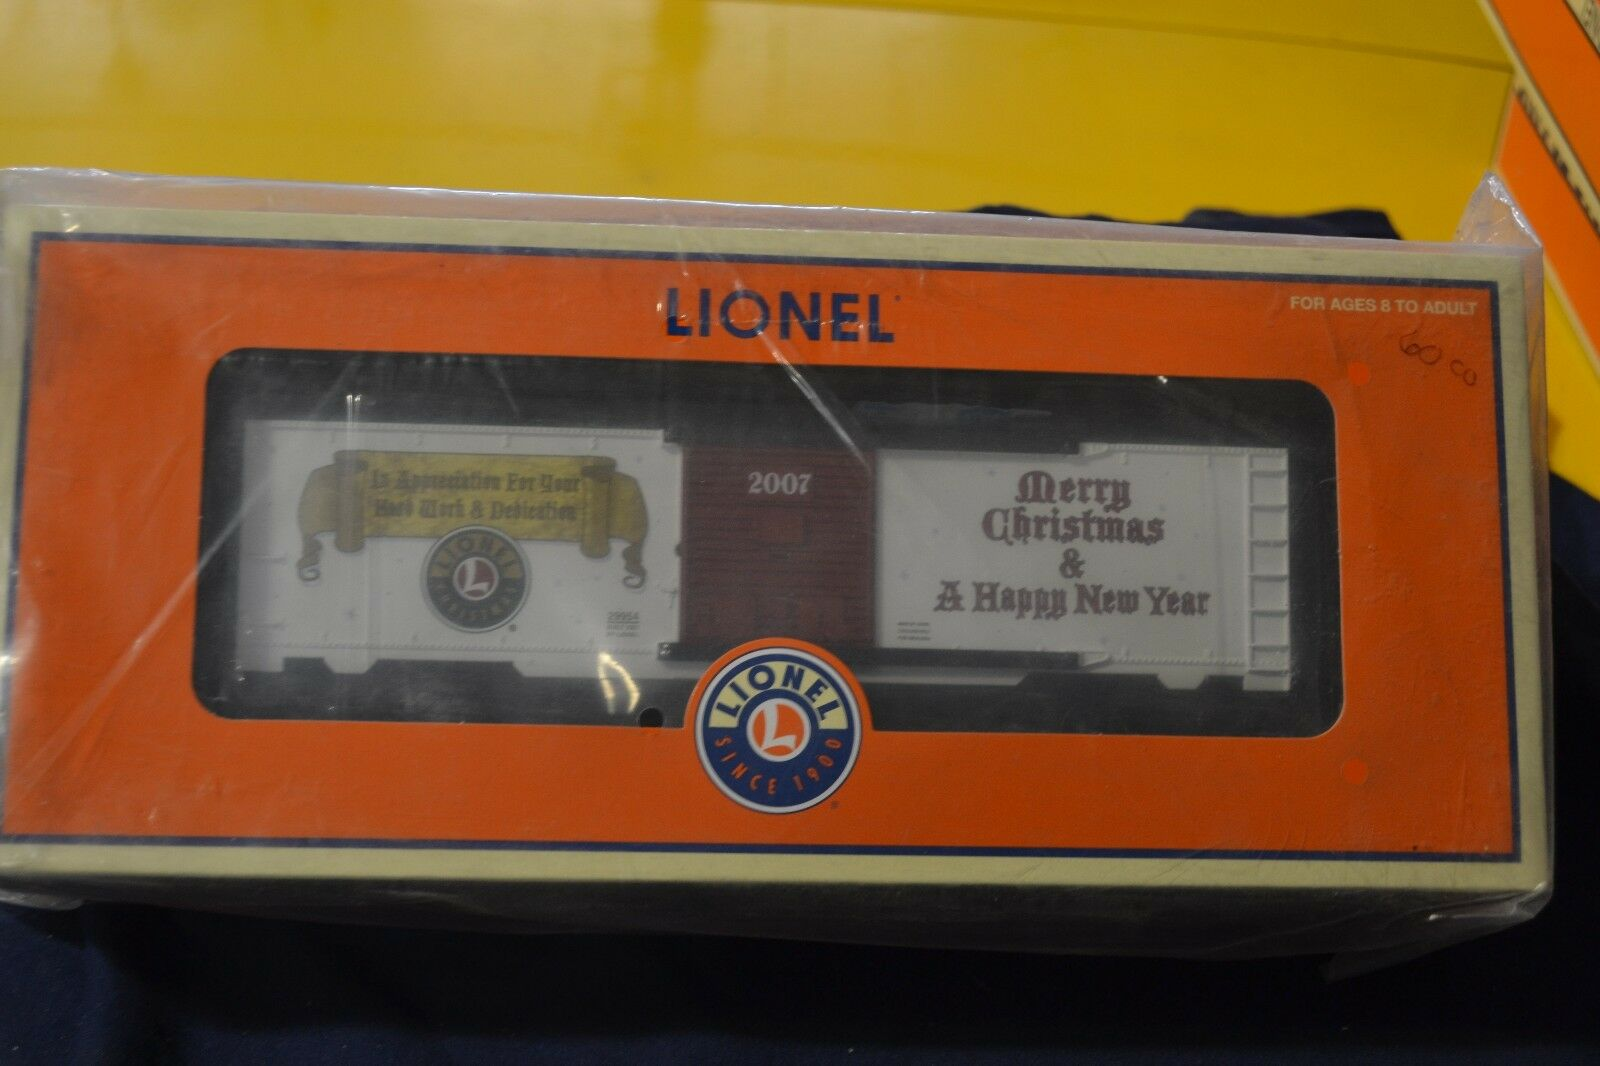 Lionel 6-29954 2007 Dealer's Christmas Boxcar - NEW